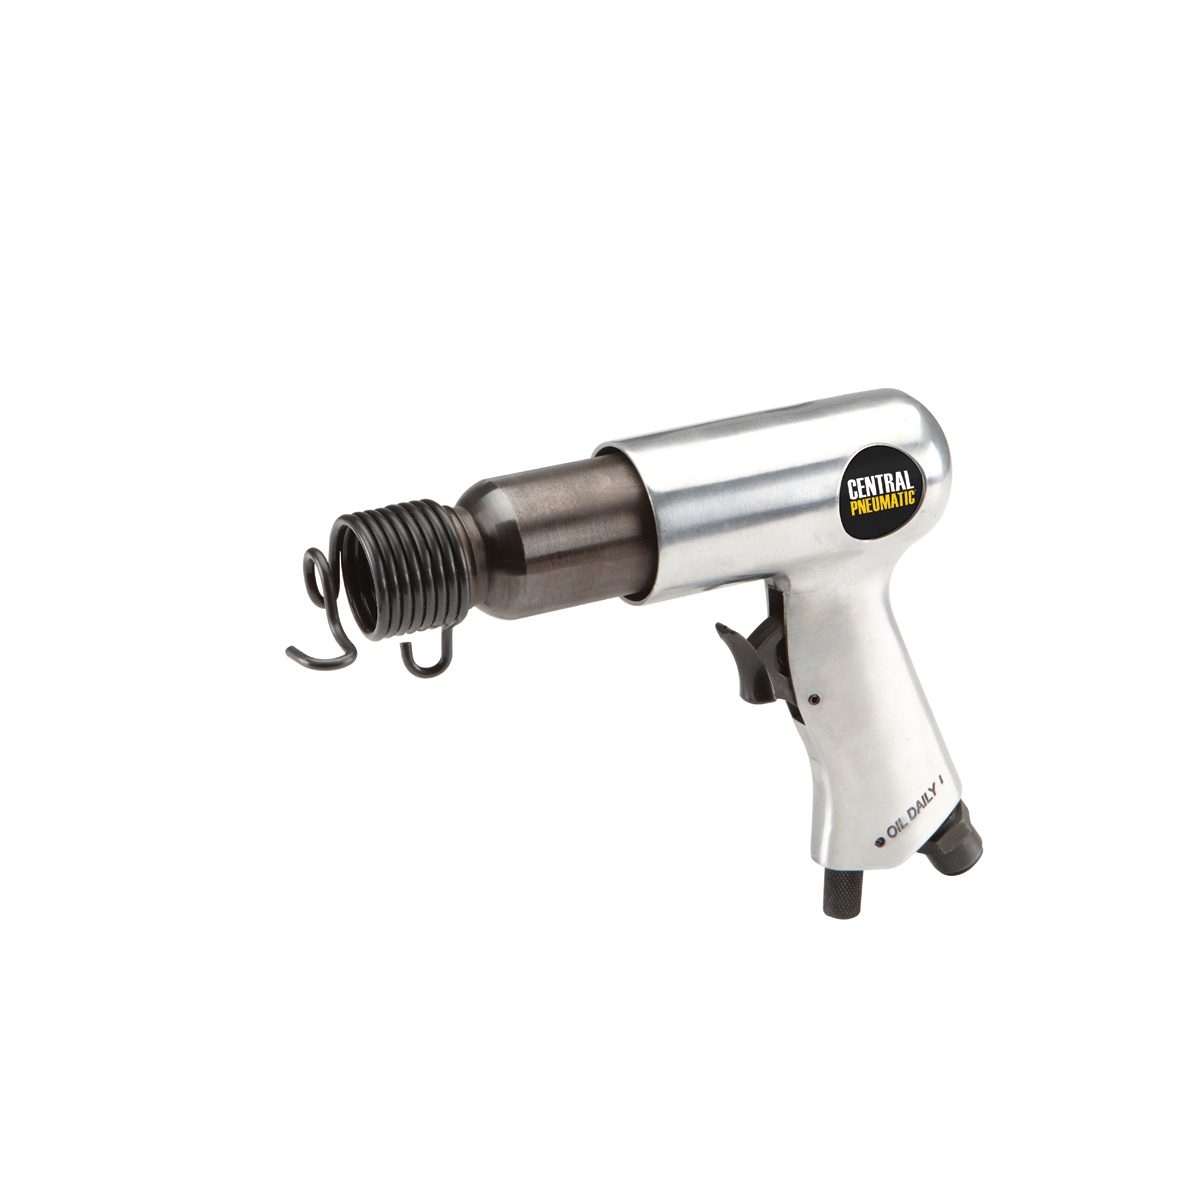 Medium Barrel Air Impact Hammer - Air chisel tile removal